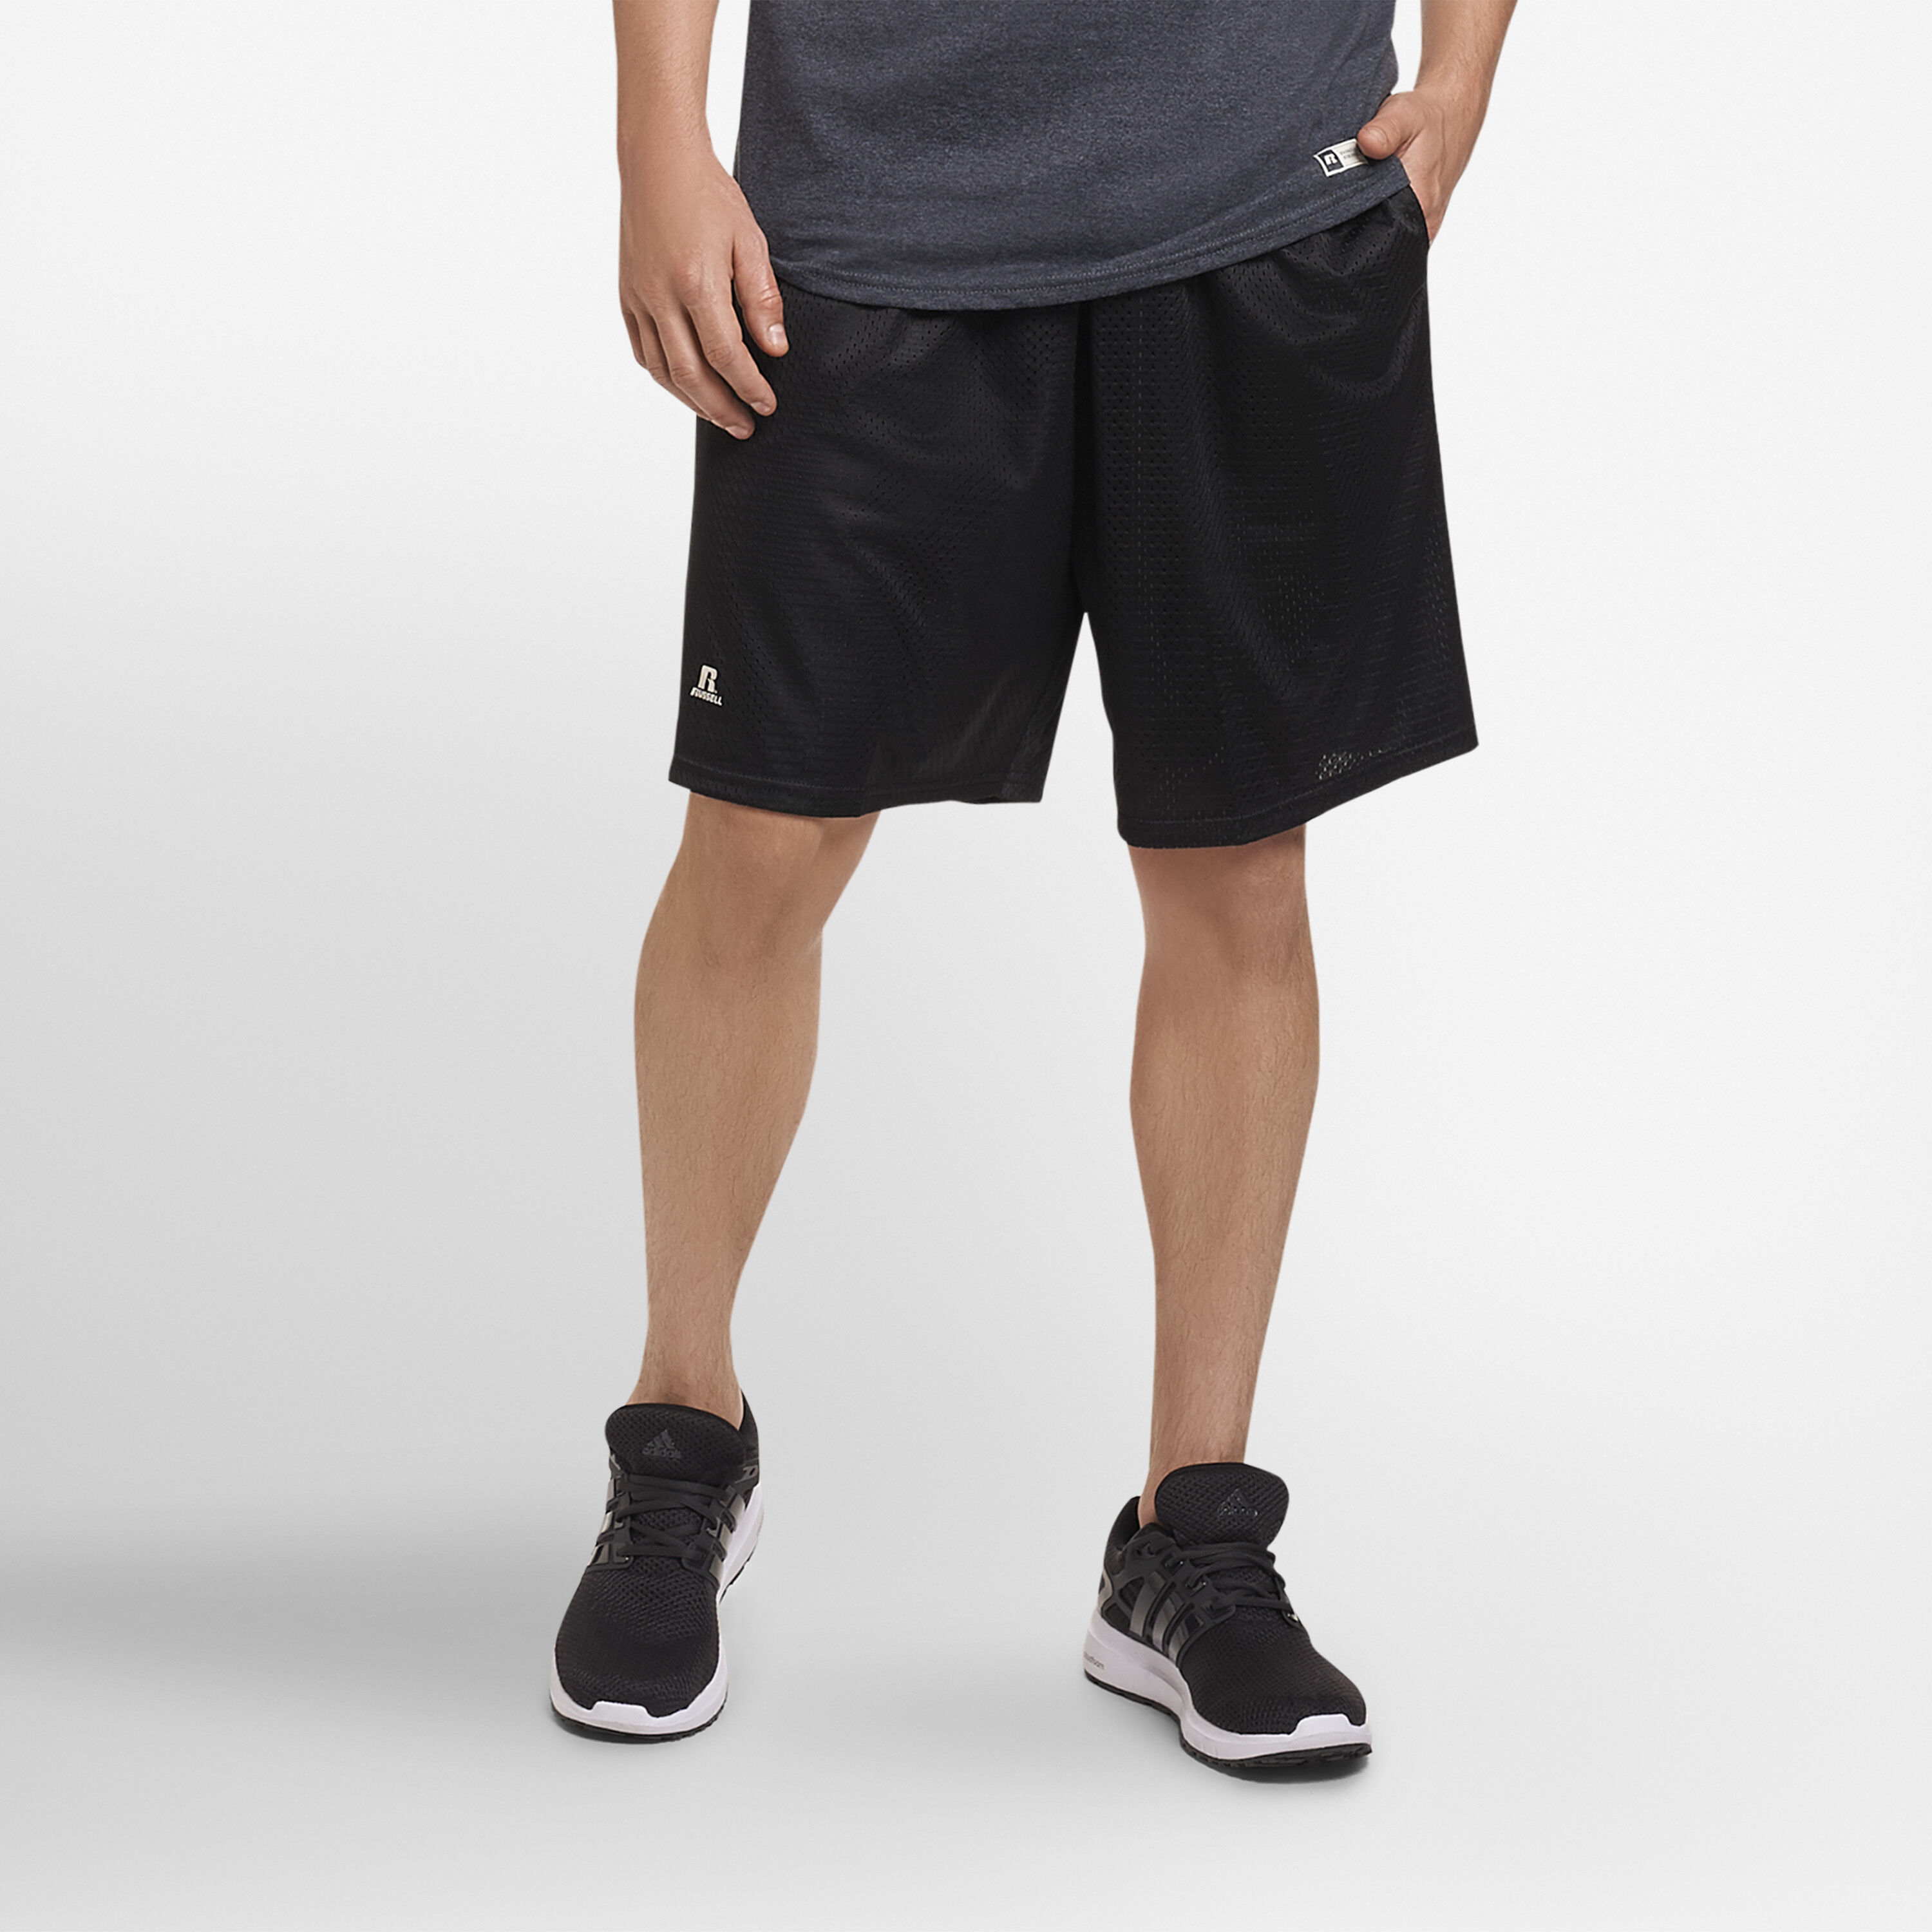 New Boys Small S Russell 100/% Cotton Black Shorts Youth Gym Exercise Running!